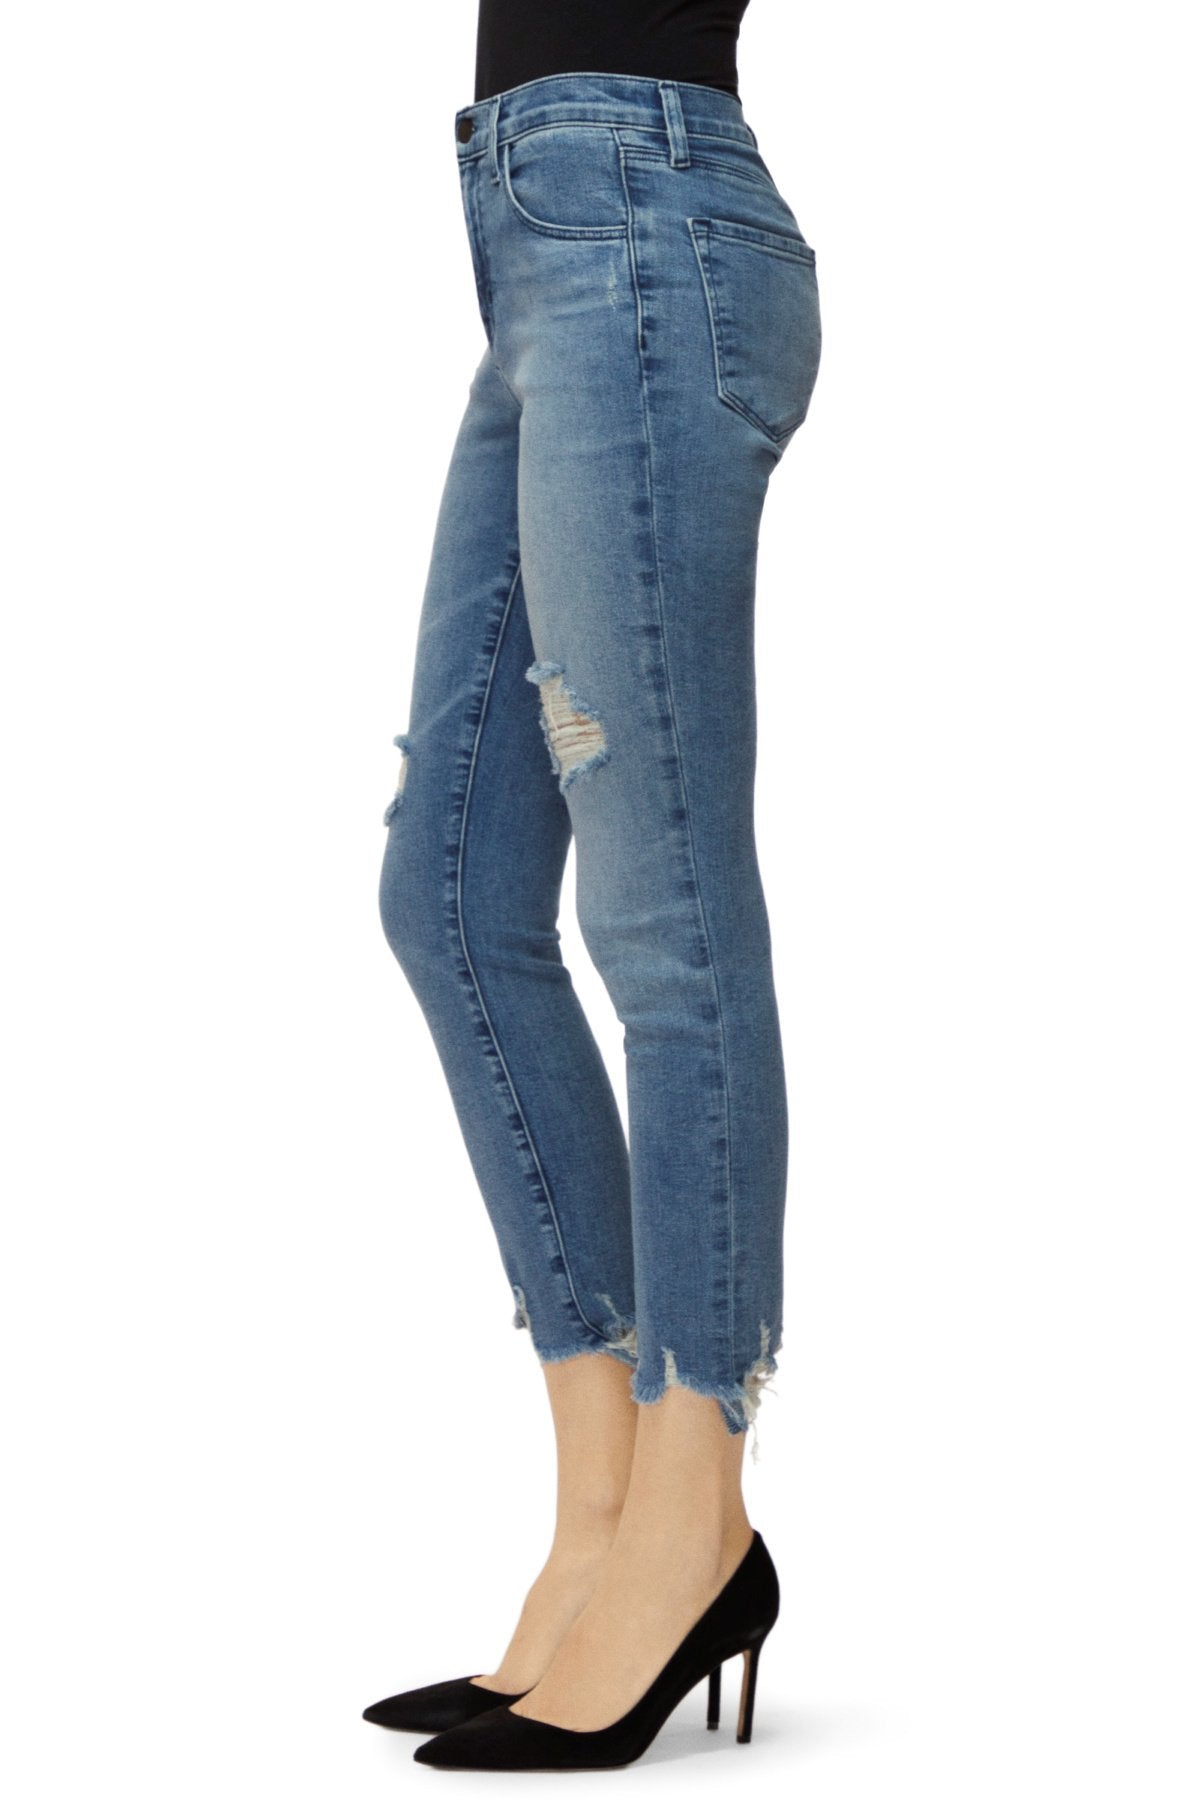 Edwards Imports Ltd Womens Jeans J Brand | Alana High Rise Cropped Skinny Jeans - Fix Up Destruct